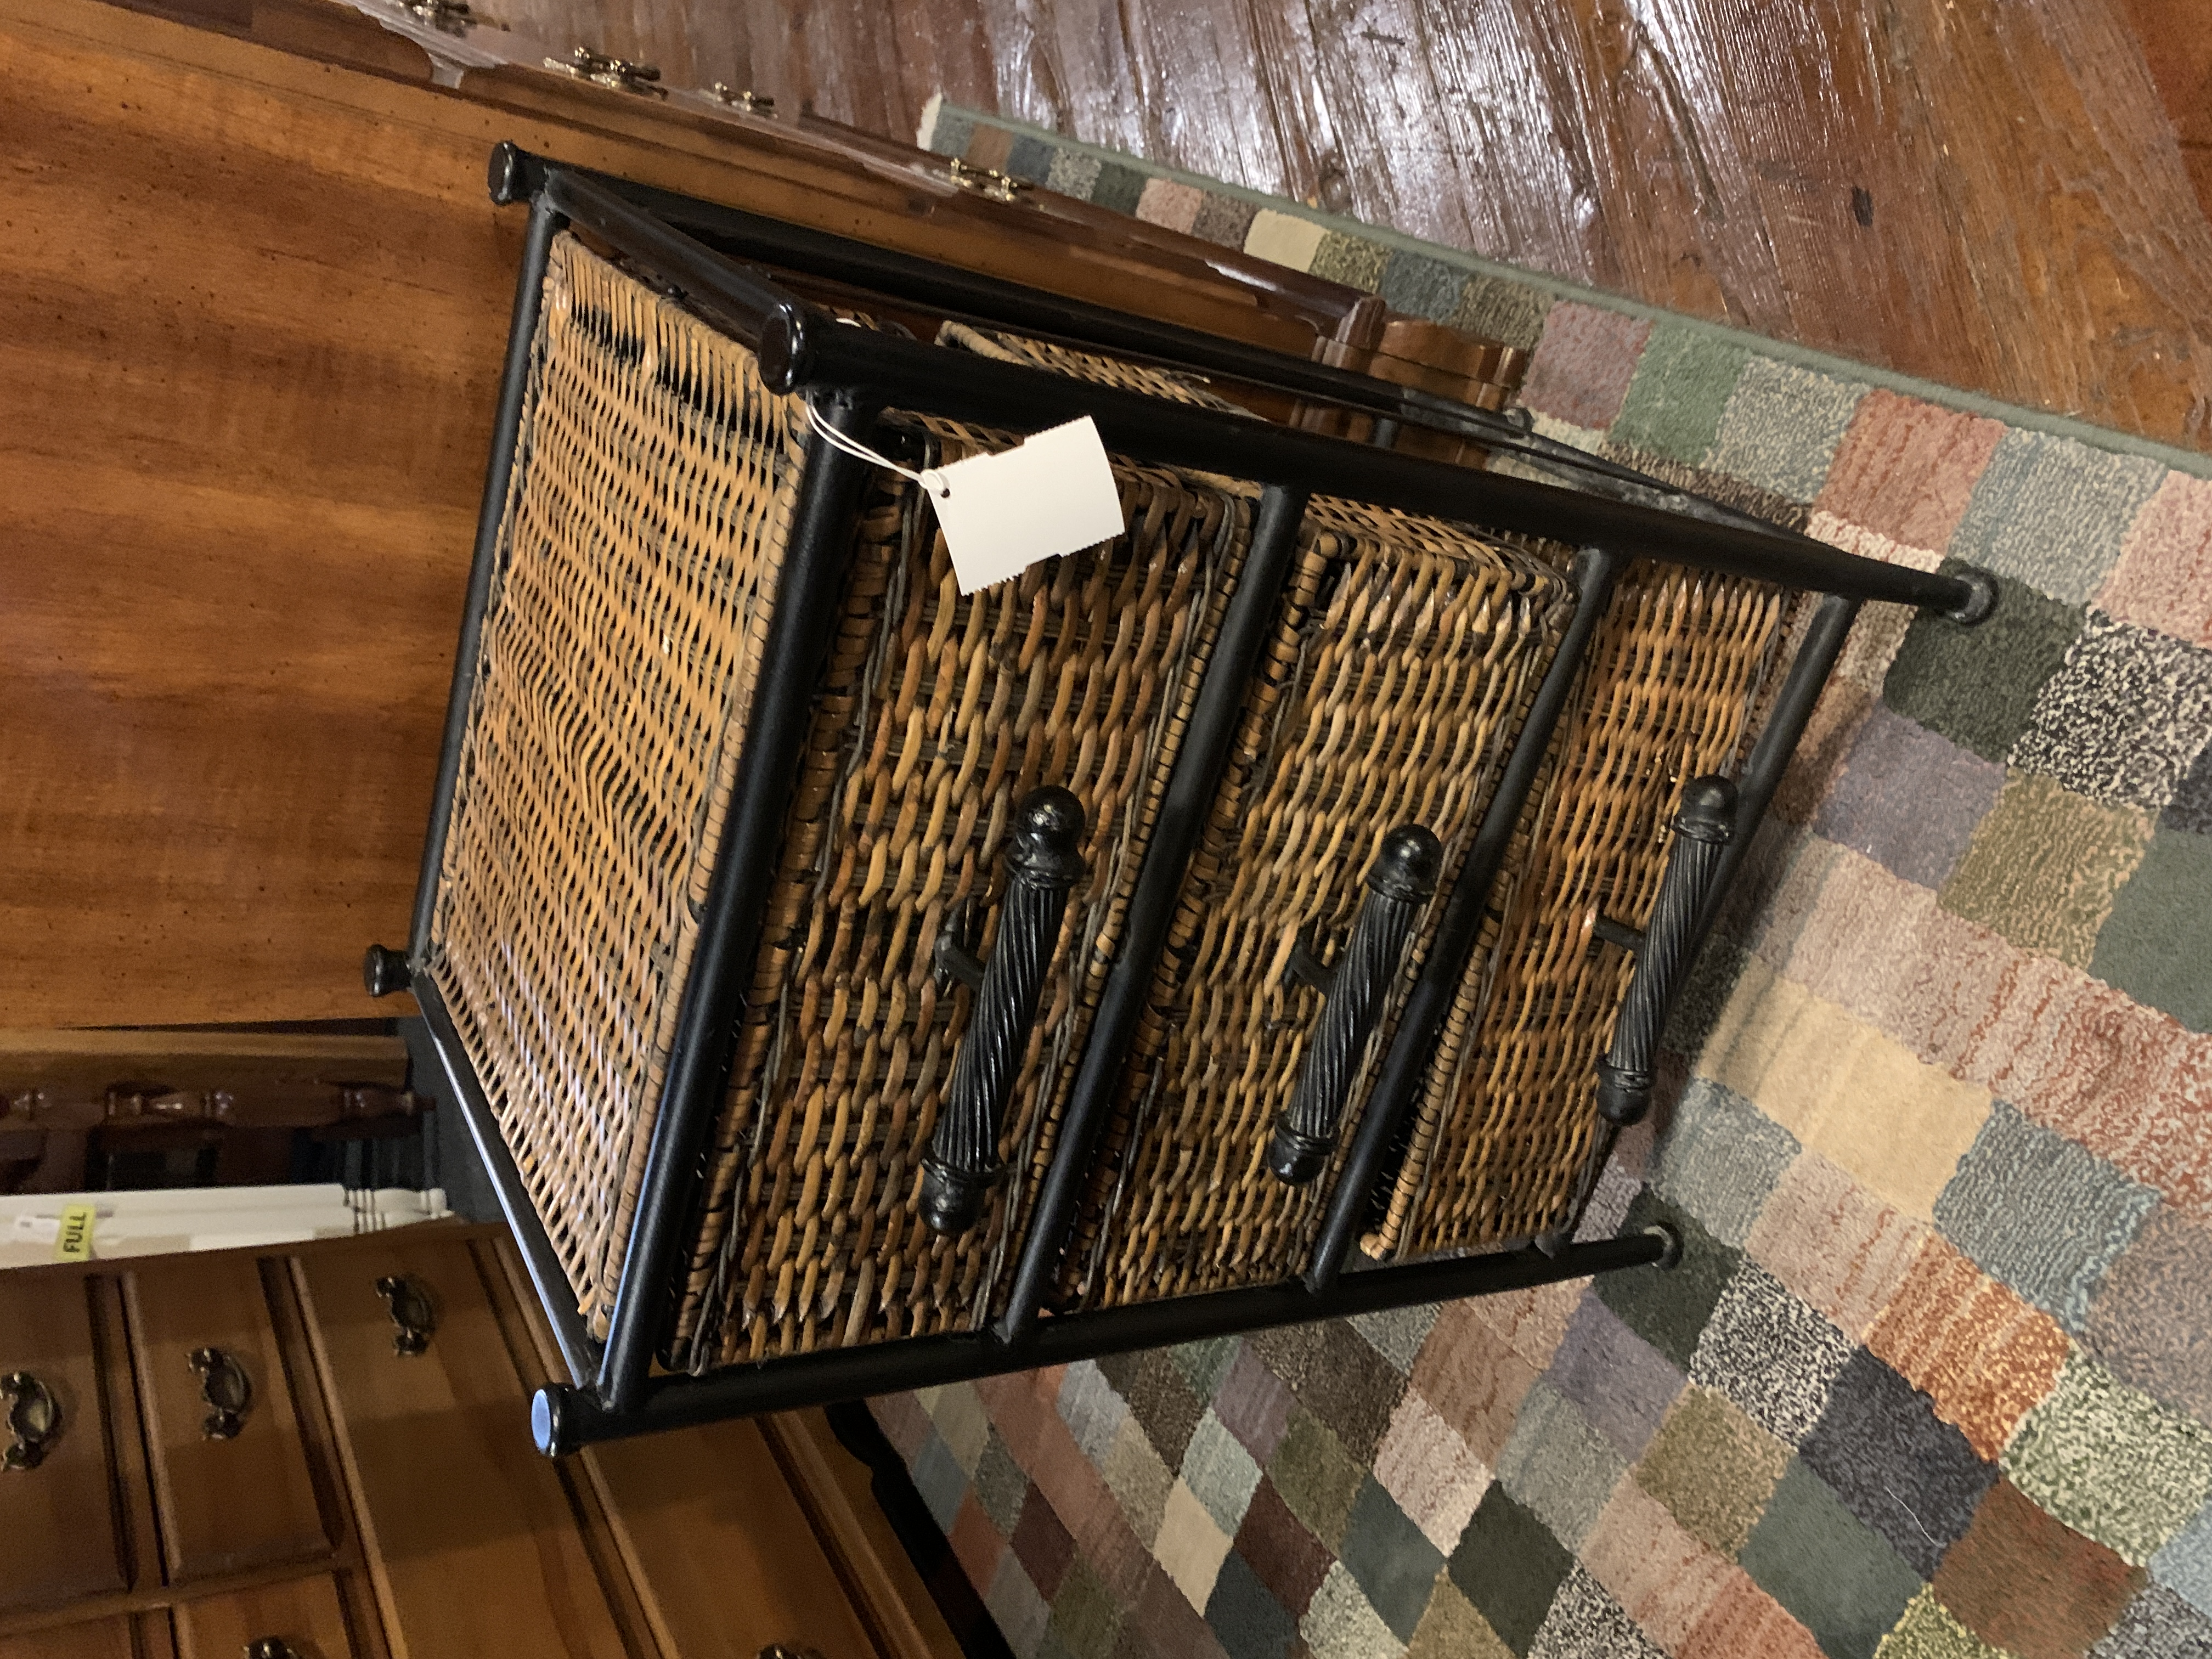 3 DRAWER CHEST WITH WICKER DRAWERS